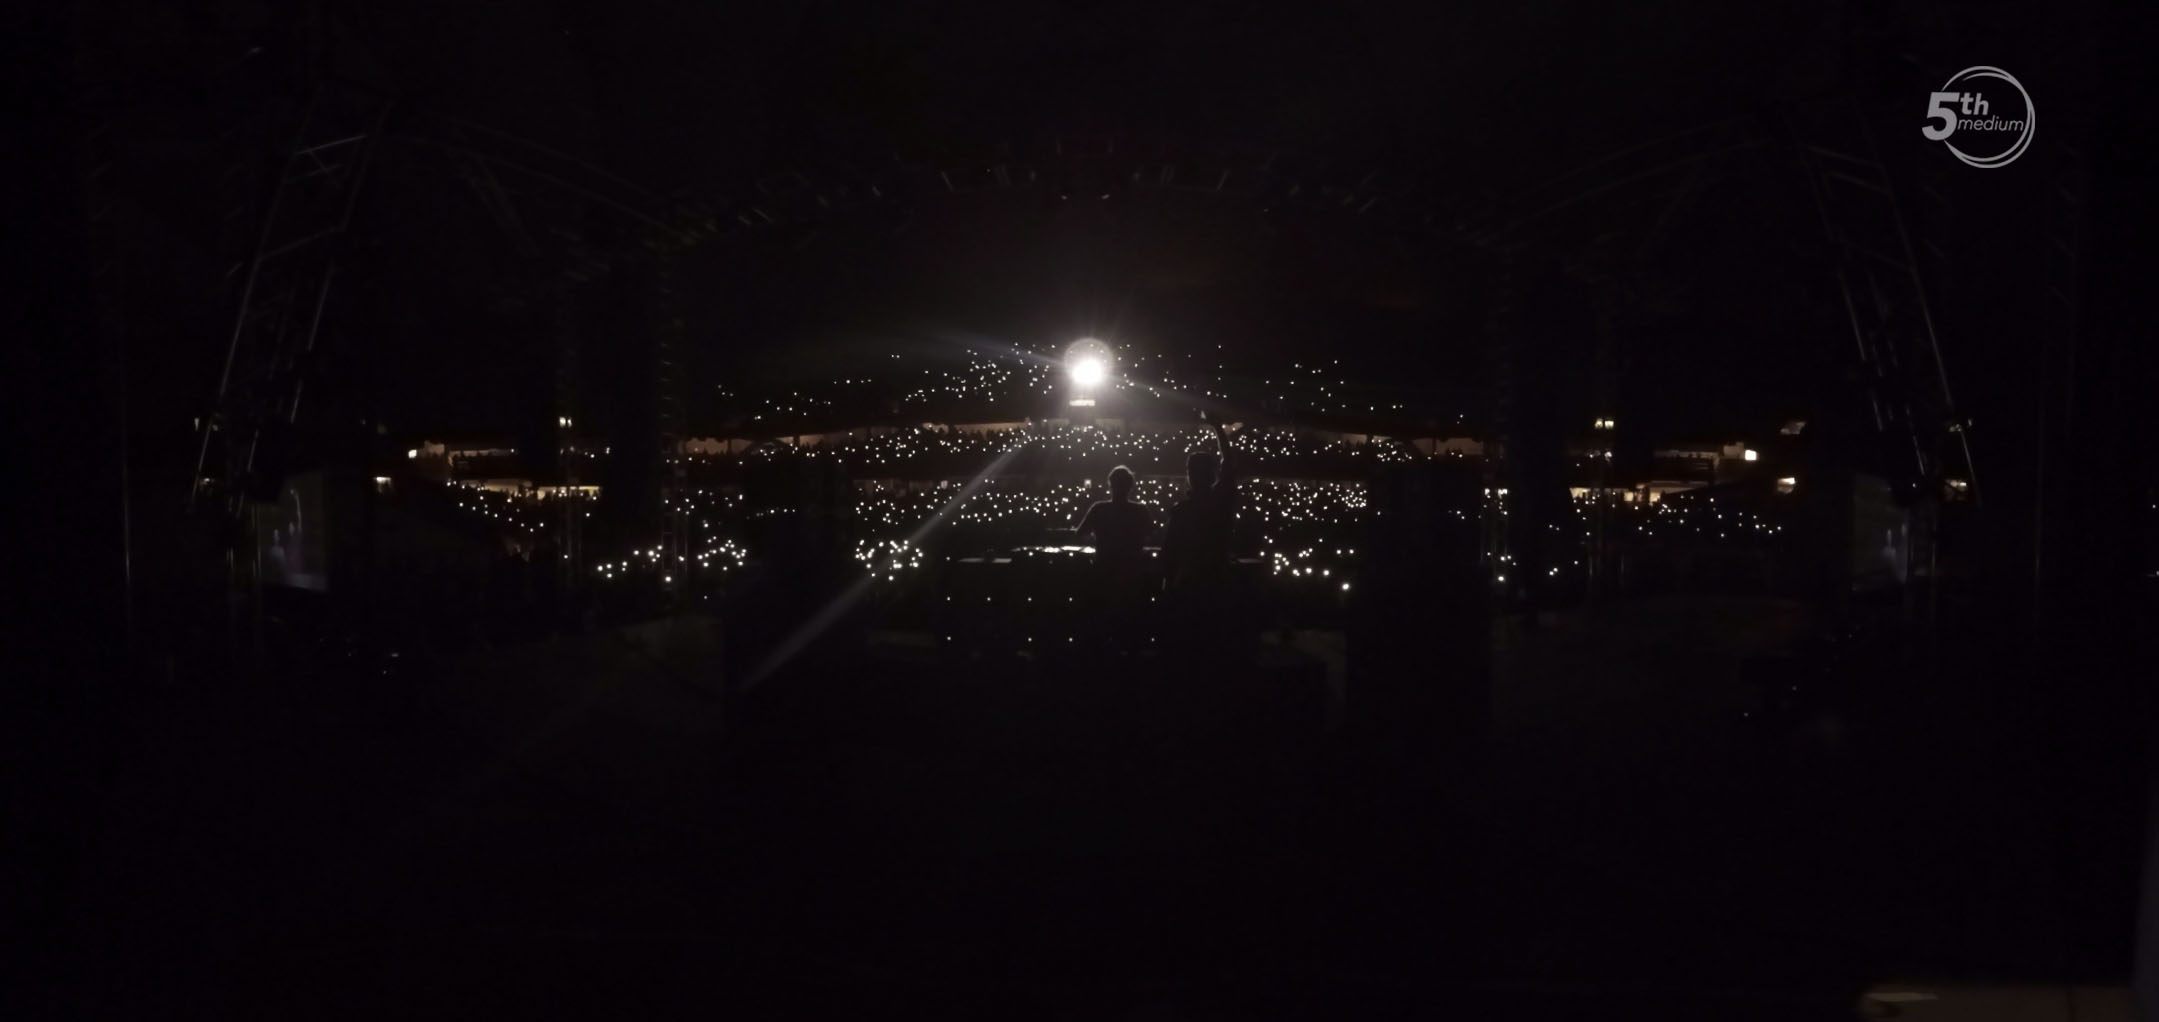 This is the view from the backstage camera